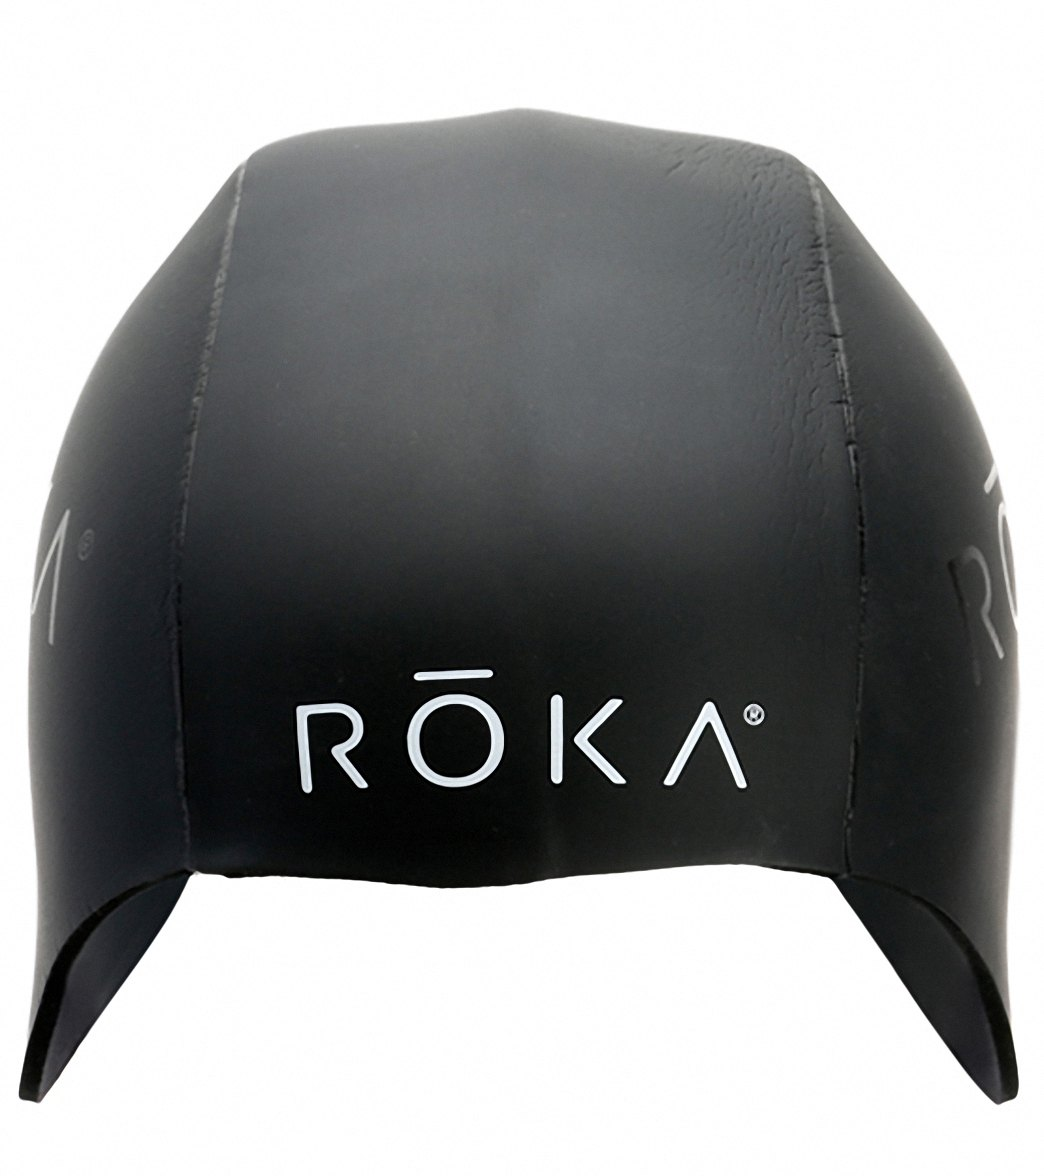 ROKA Sports Strapless Neoprene Hood at SwimOutlet.com 5633d313395